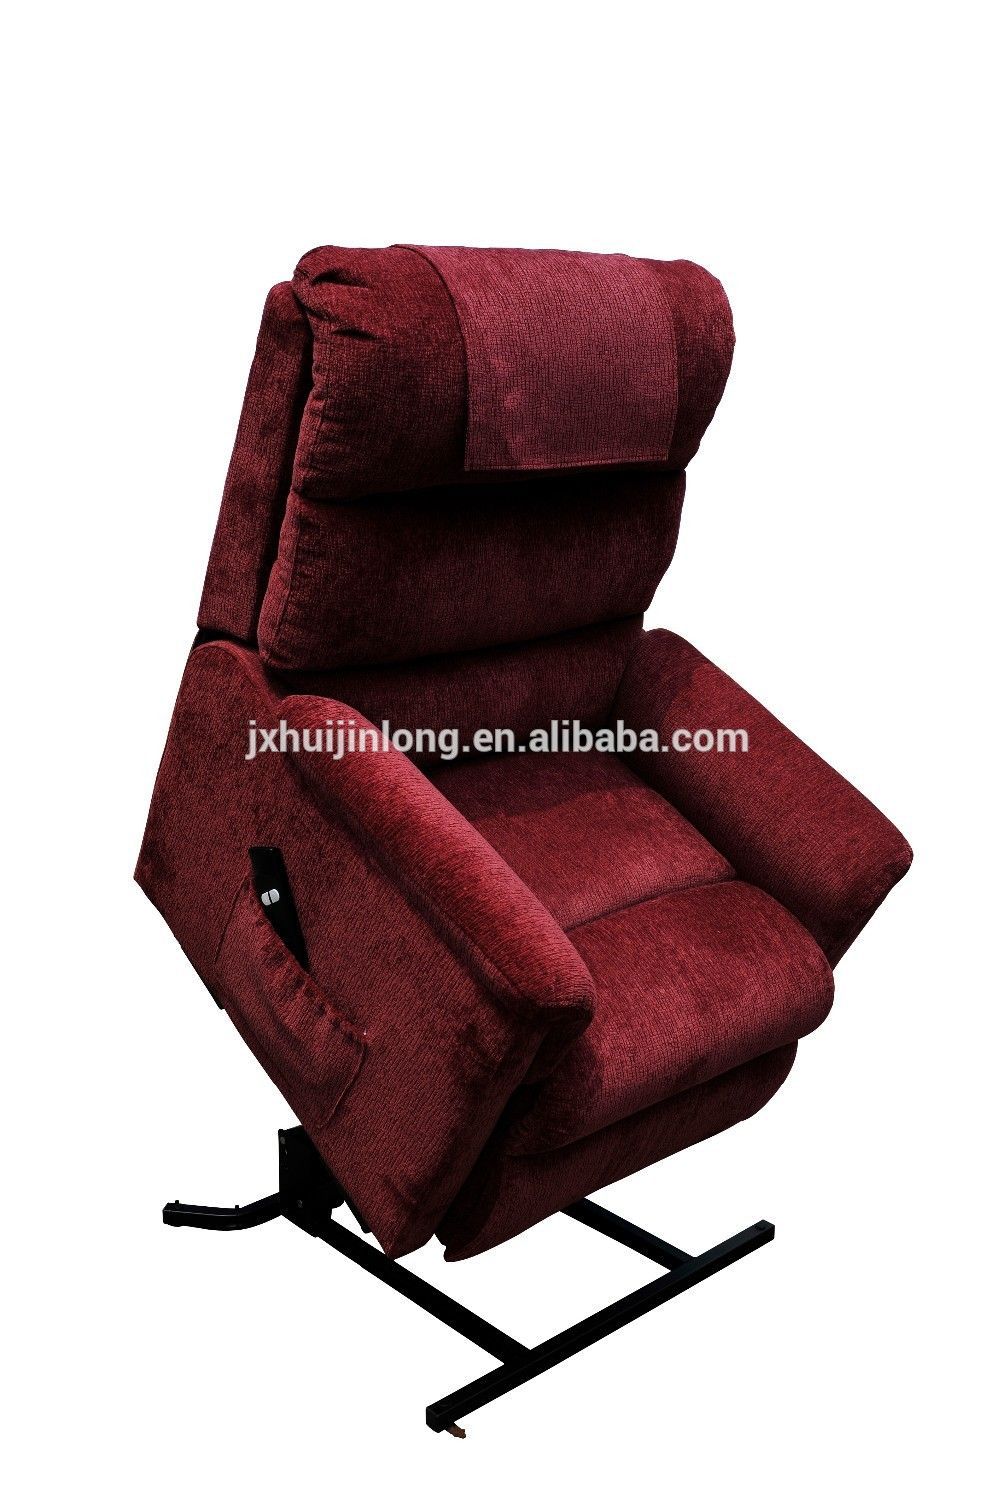 Lift Armchair Lift Chair Rise Recliner Living Room Sectional Sofa Made By Hjl